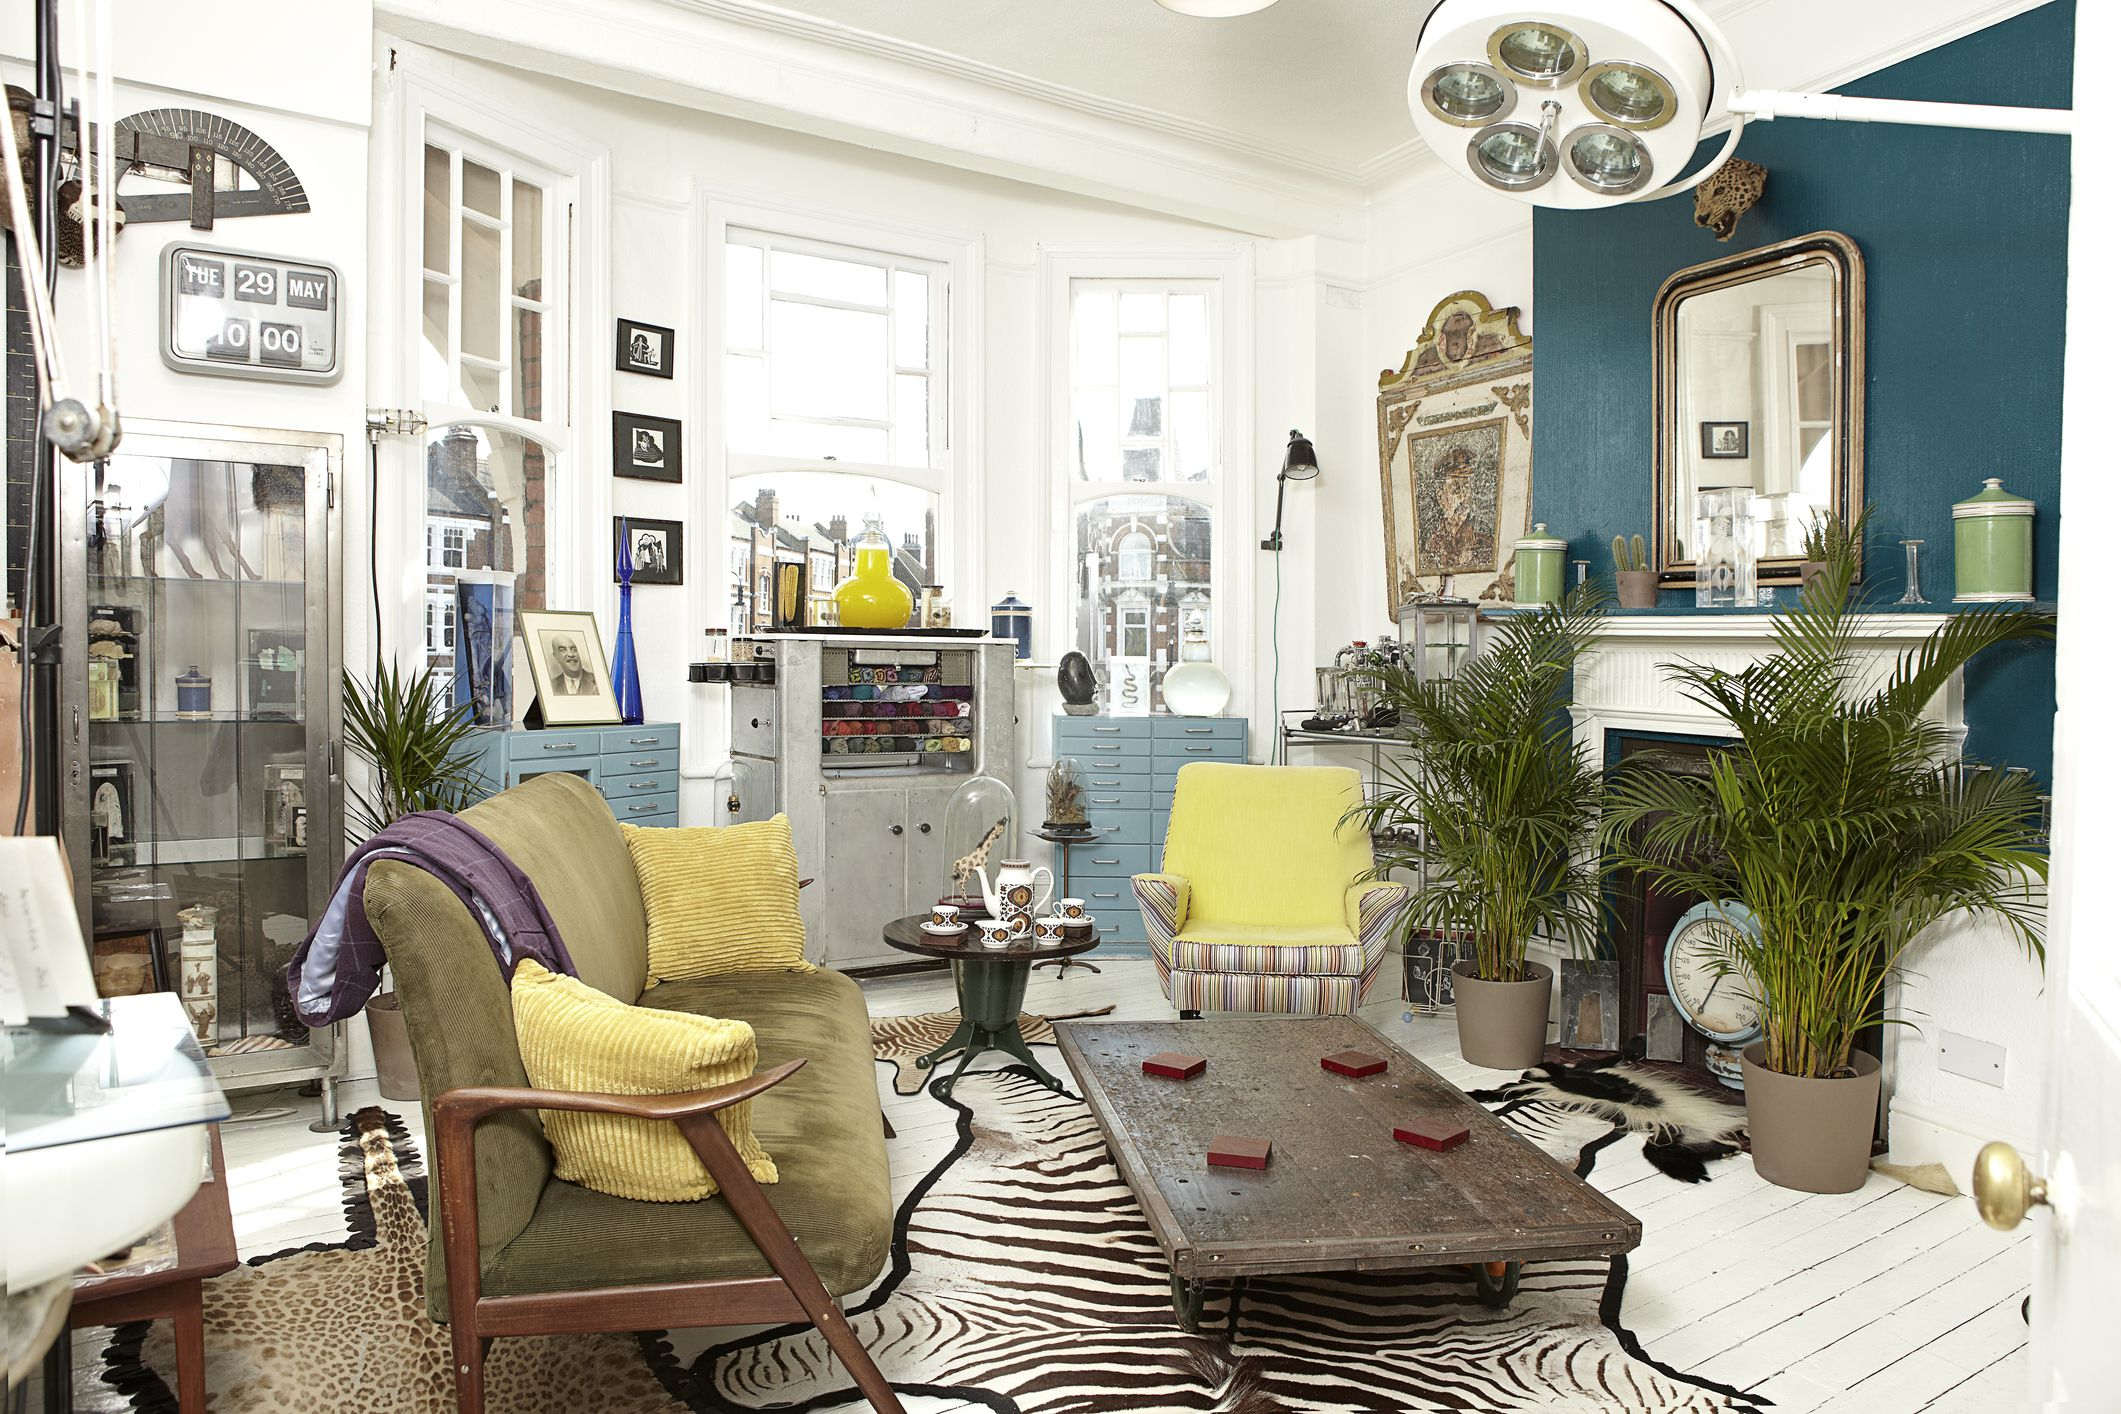 interior design slang & Interior Design Slang - Design Terms To Know